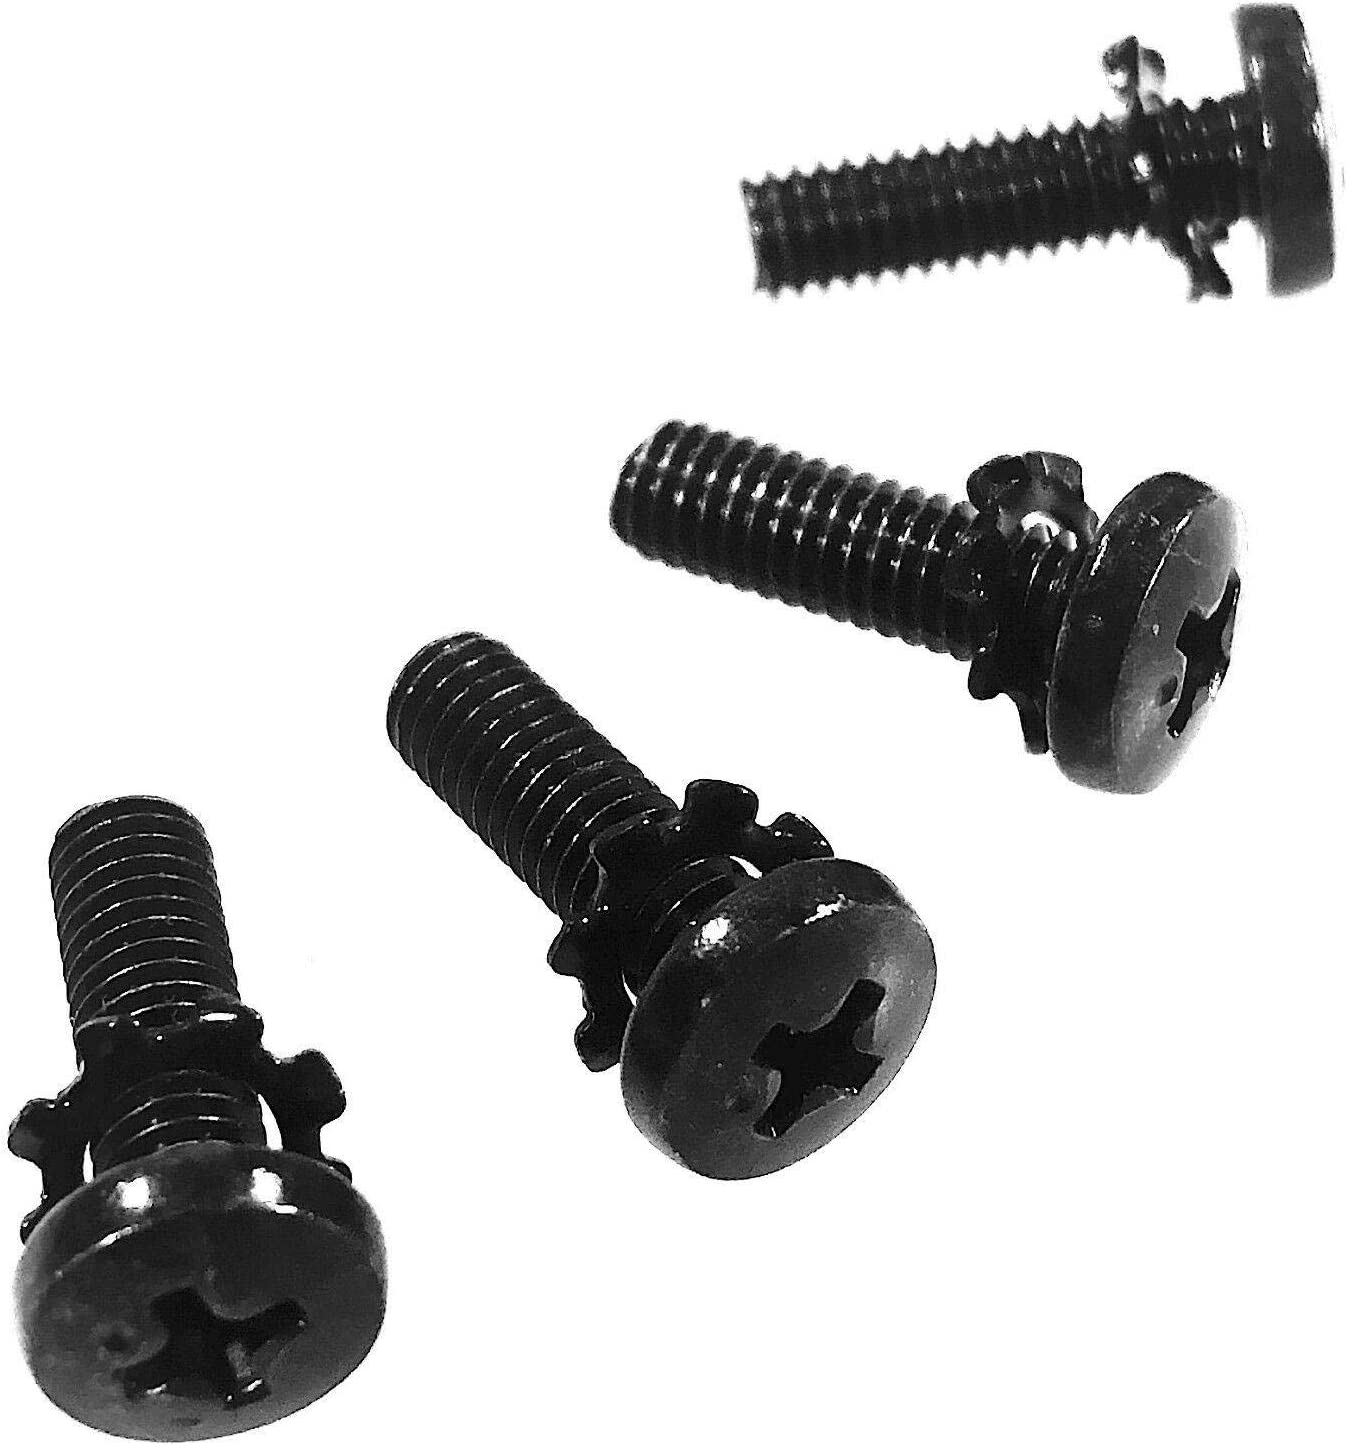 ReplacementScrews Stand Screws for LG 49LH5700